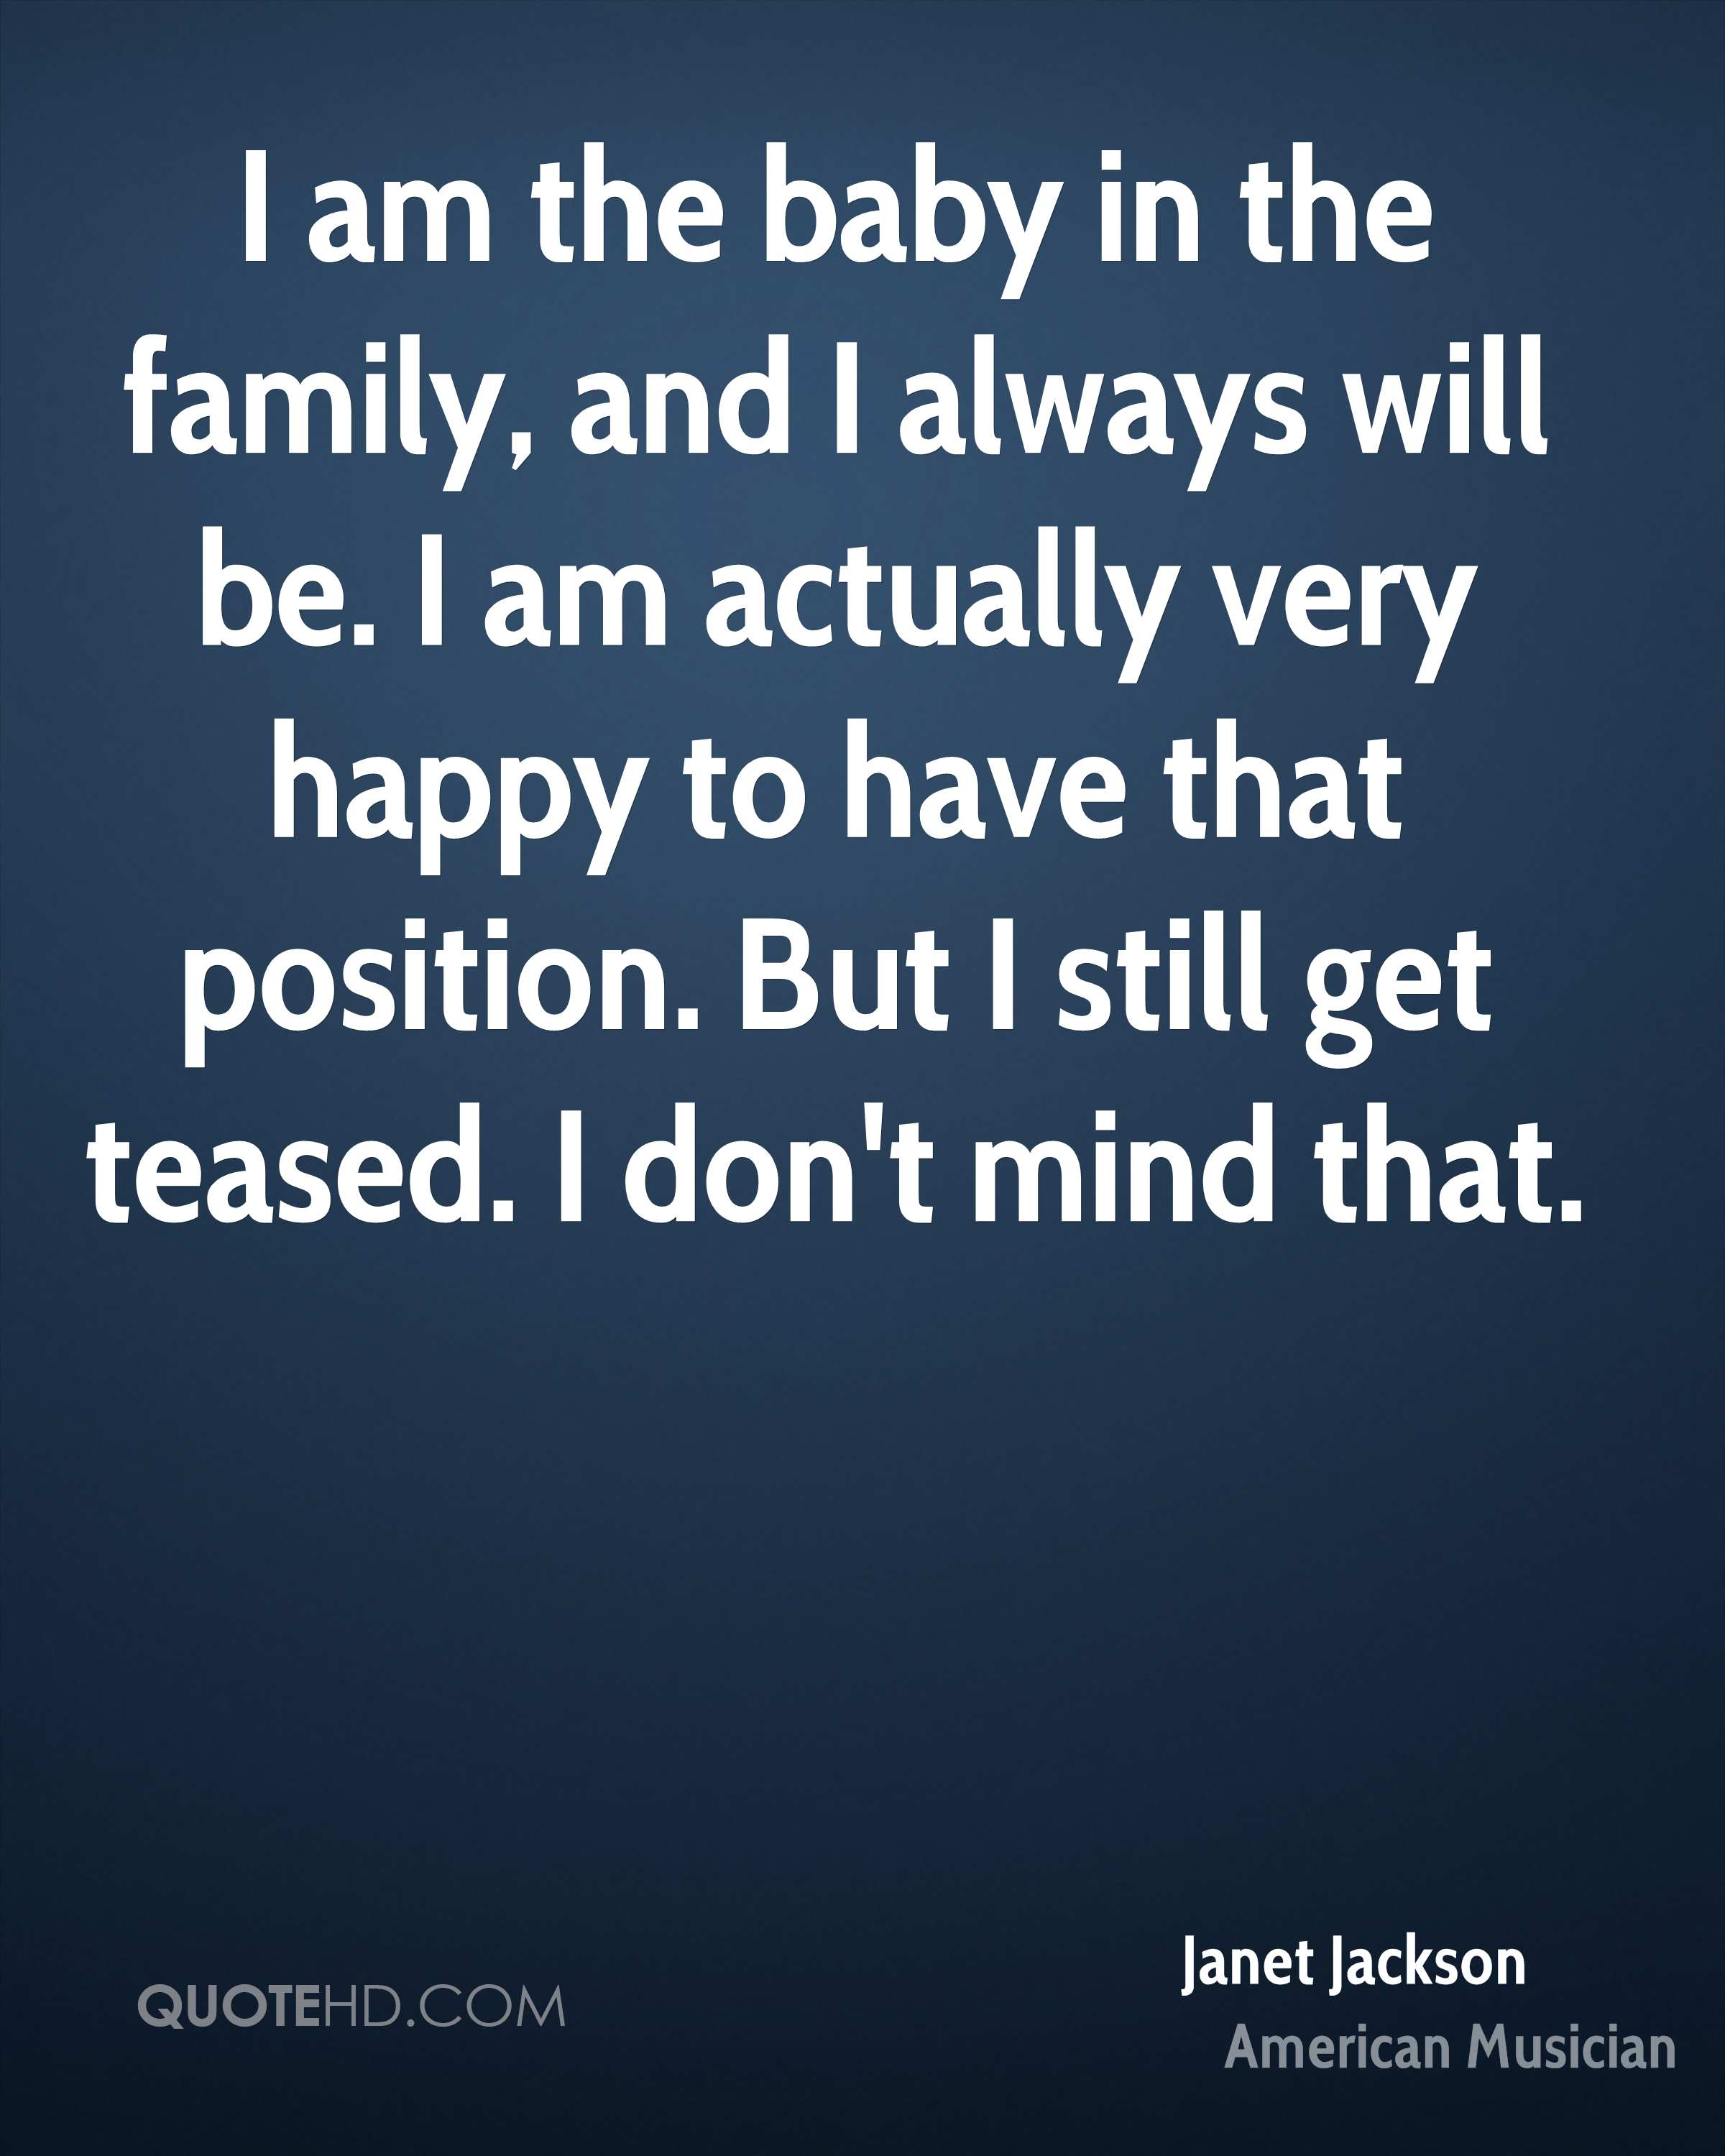 I am the baby in the family, and I always will be. I am actually very happy to have that position. But I still get teased. I don't mind that.